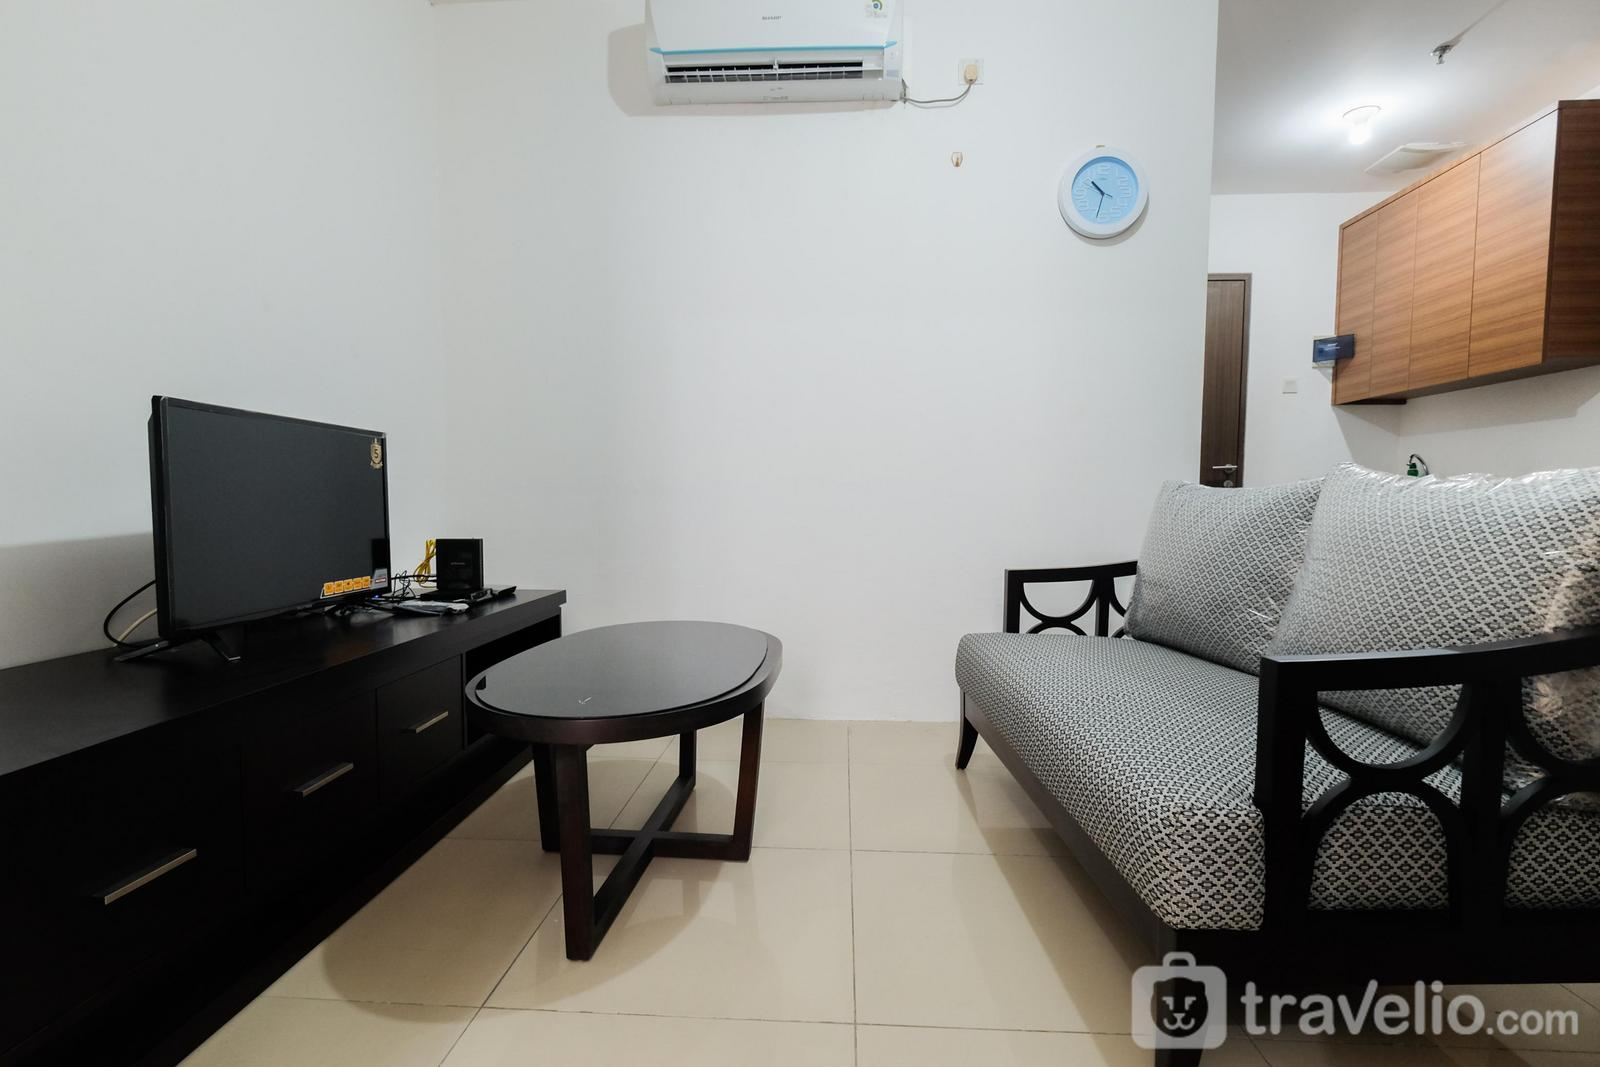 Pasar Baru Mansion  - New Furnished 2BR Pasar Baru Mansion Apartment By Travelio